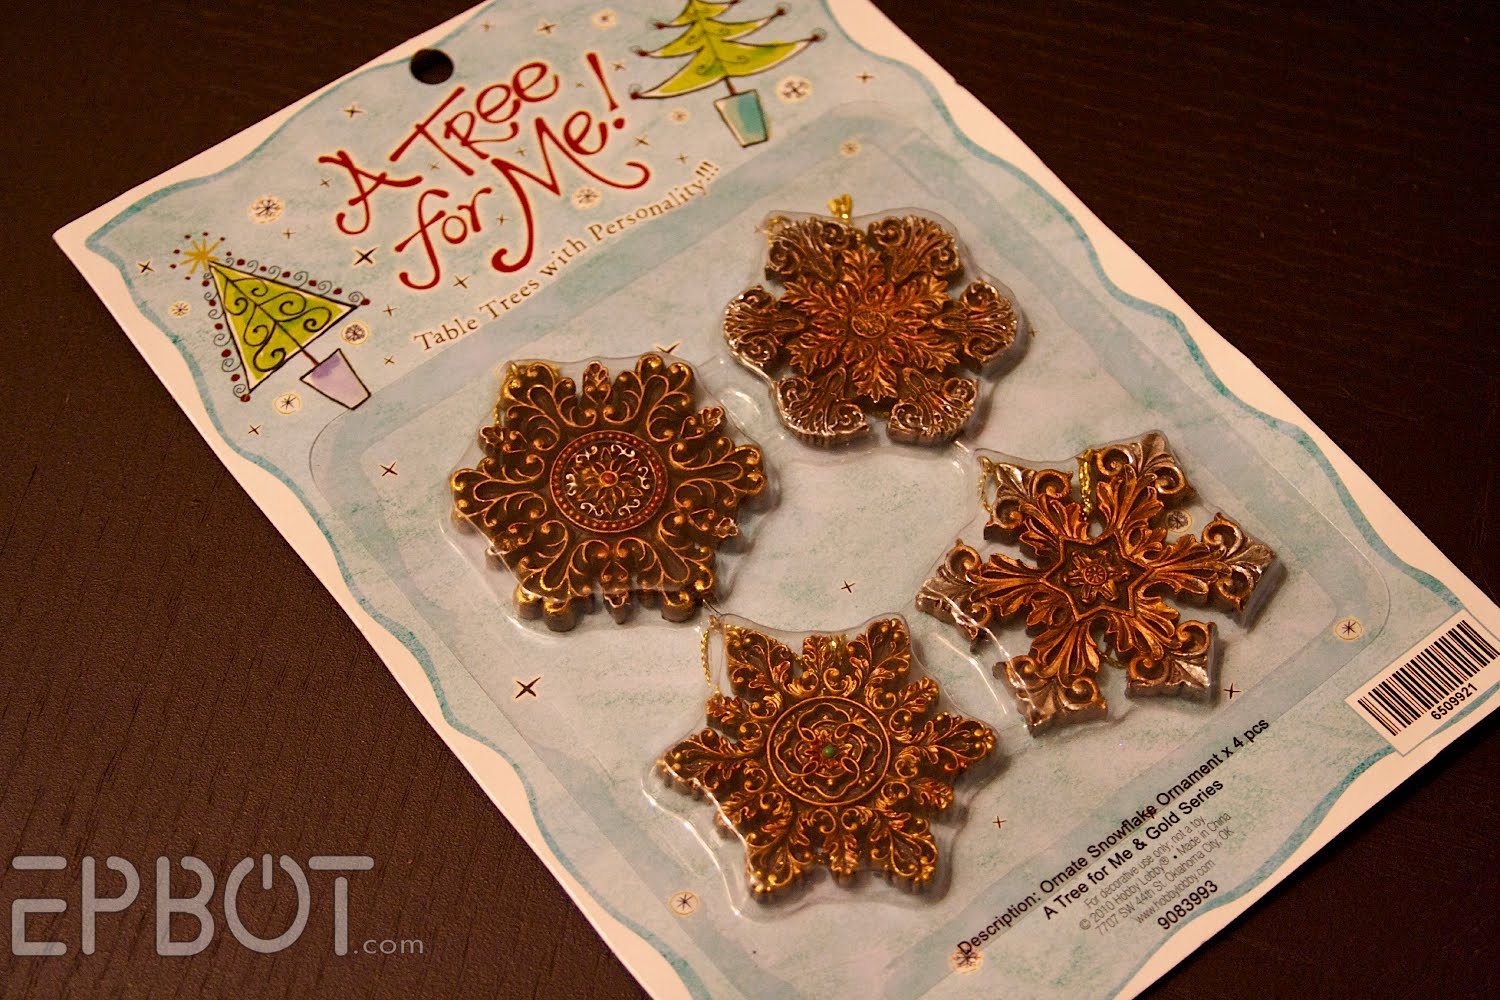 Miniature ornaments - I Like To Tie Tabletop Tree Ornaments In With The Bows On Gift Boxes But I Guess I Never Got Around To Using These When I Found Them I Immediately Thought